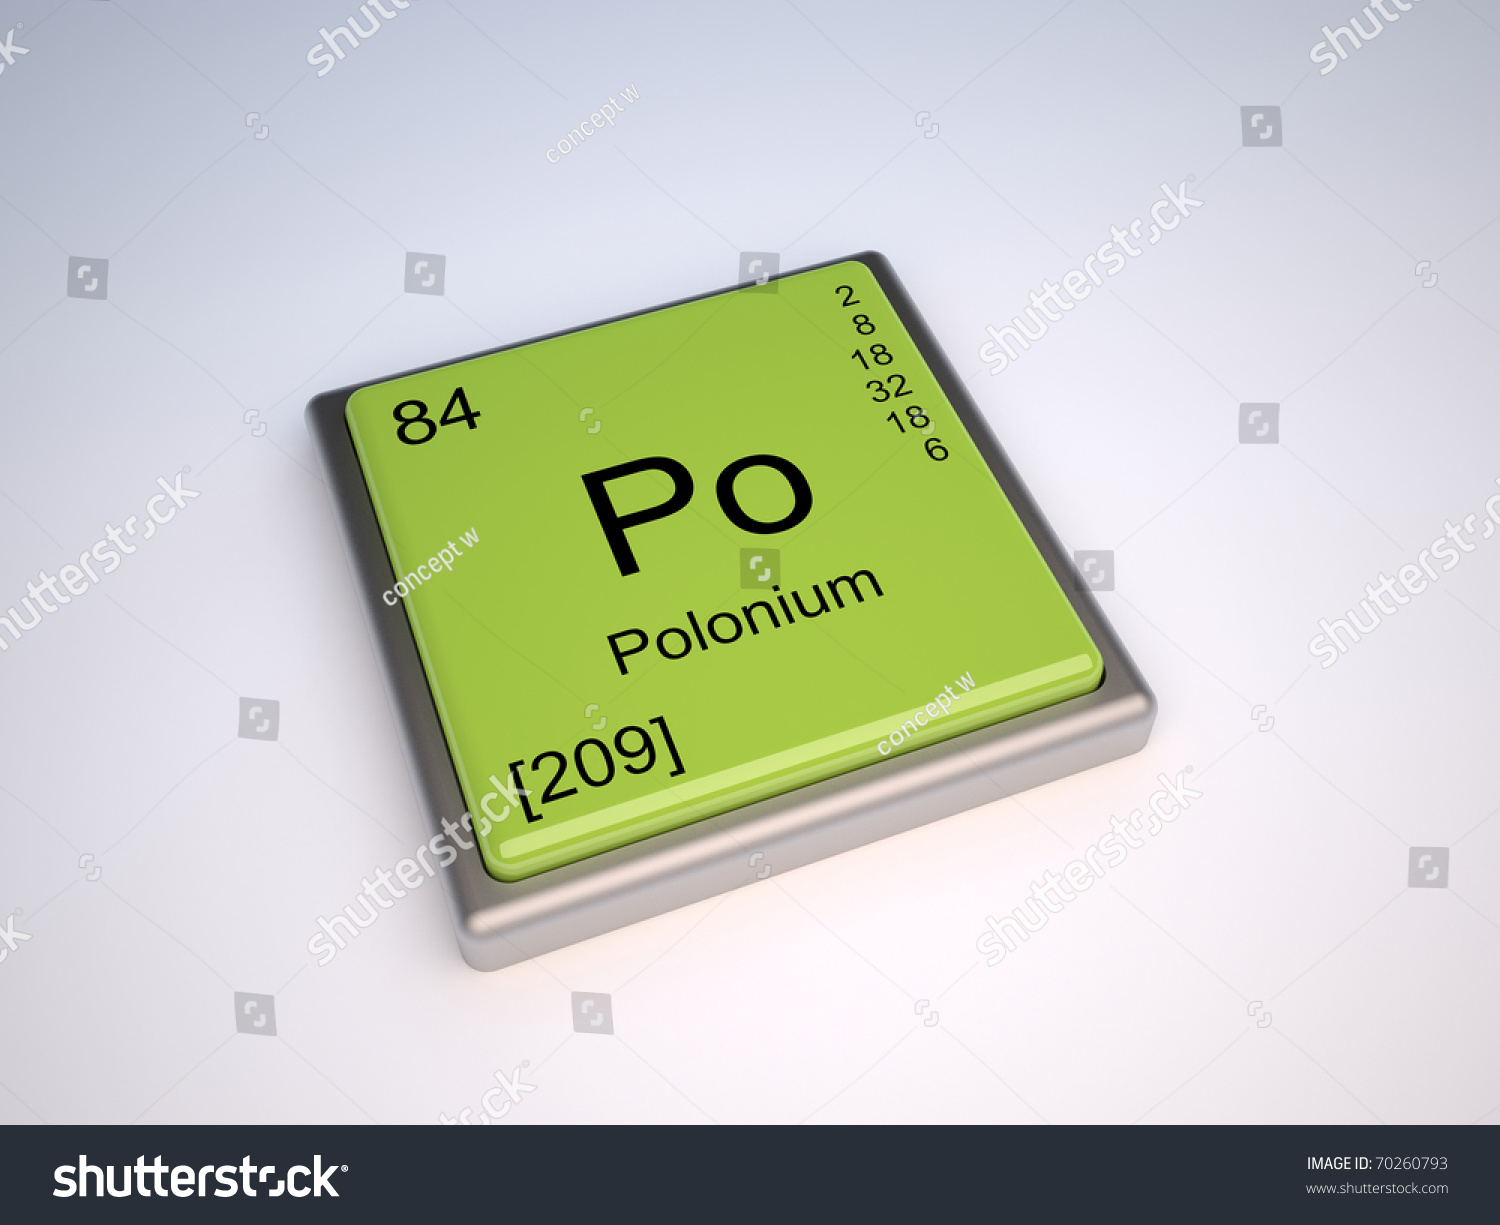 Polonium chemical element periodic table symbol stock illustration polonium chemical element of the periodic table with symbol po iupac gamestrikefo Gallery